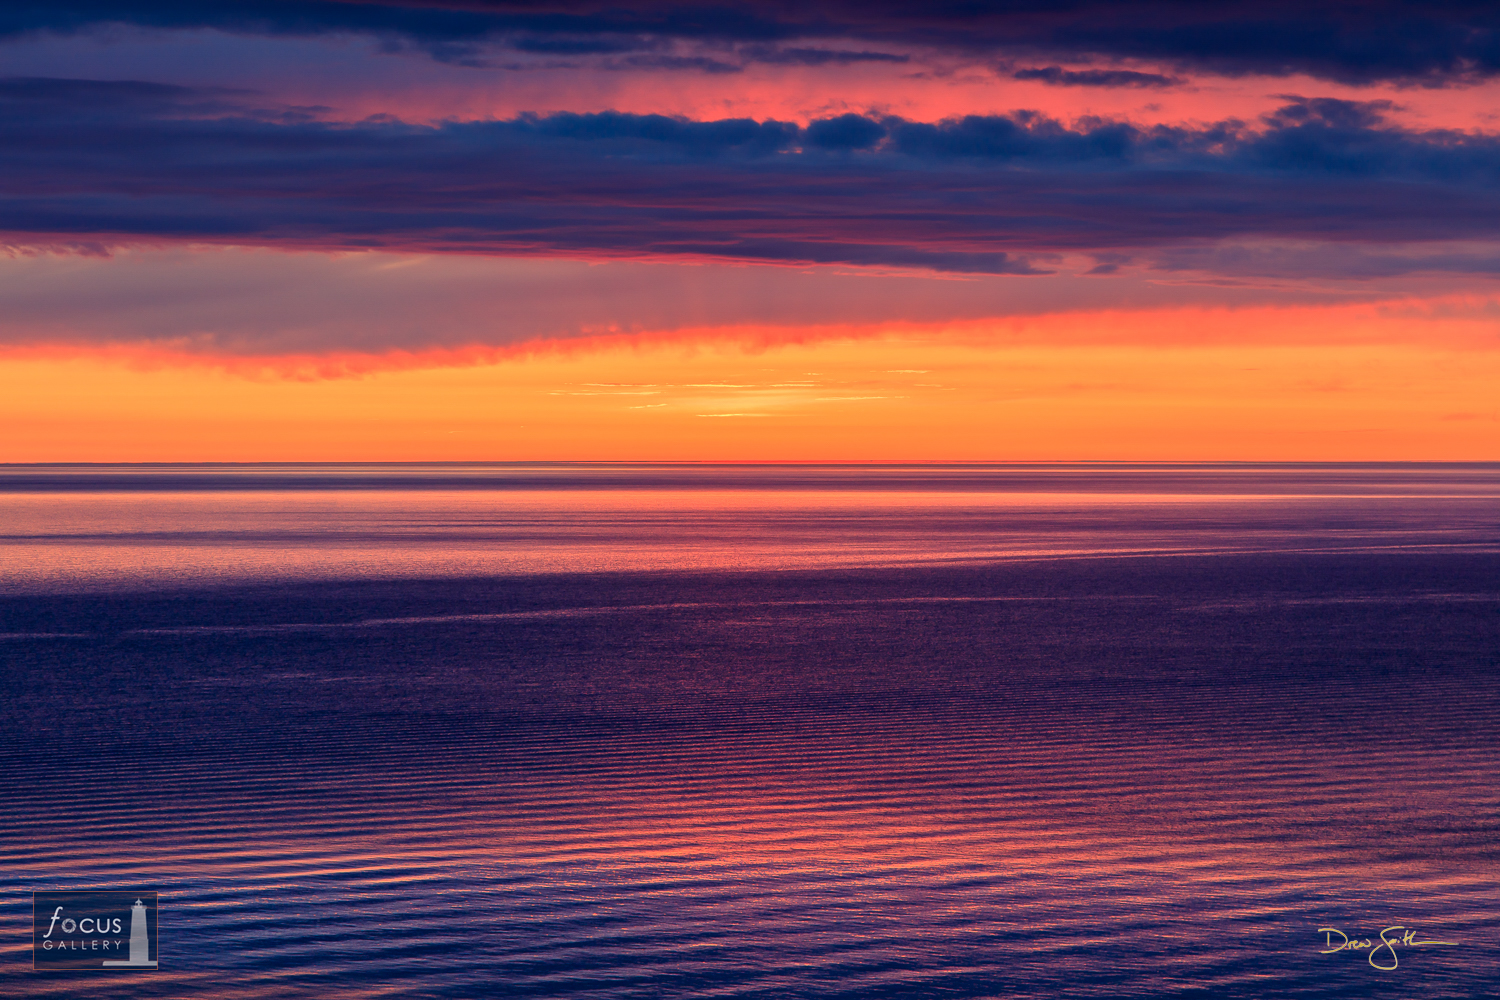 Photo © Drew Smith The post-sunset glow creates layers and layers of texture and color in the clouds and surface of Lake Michigan...